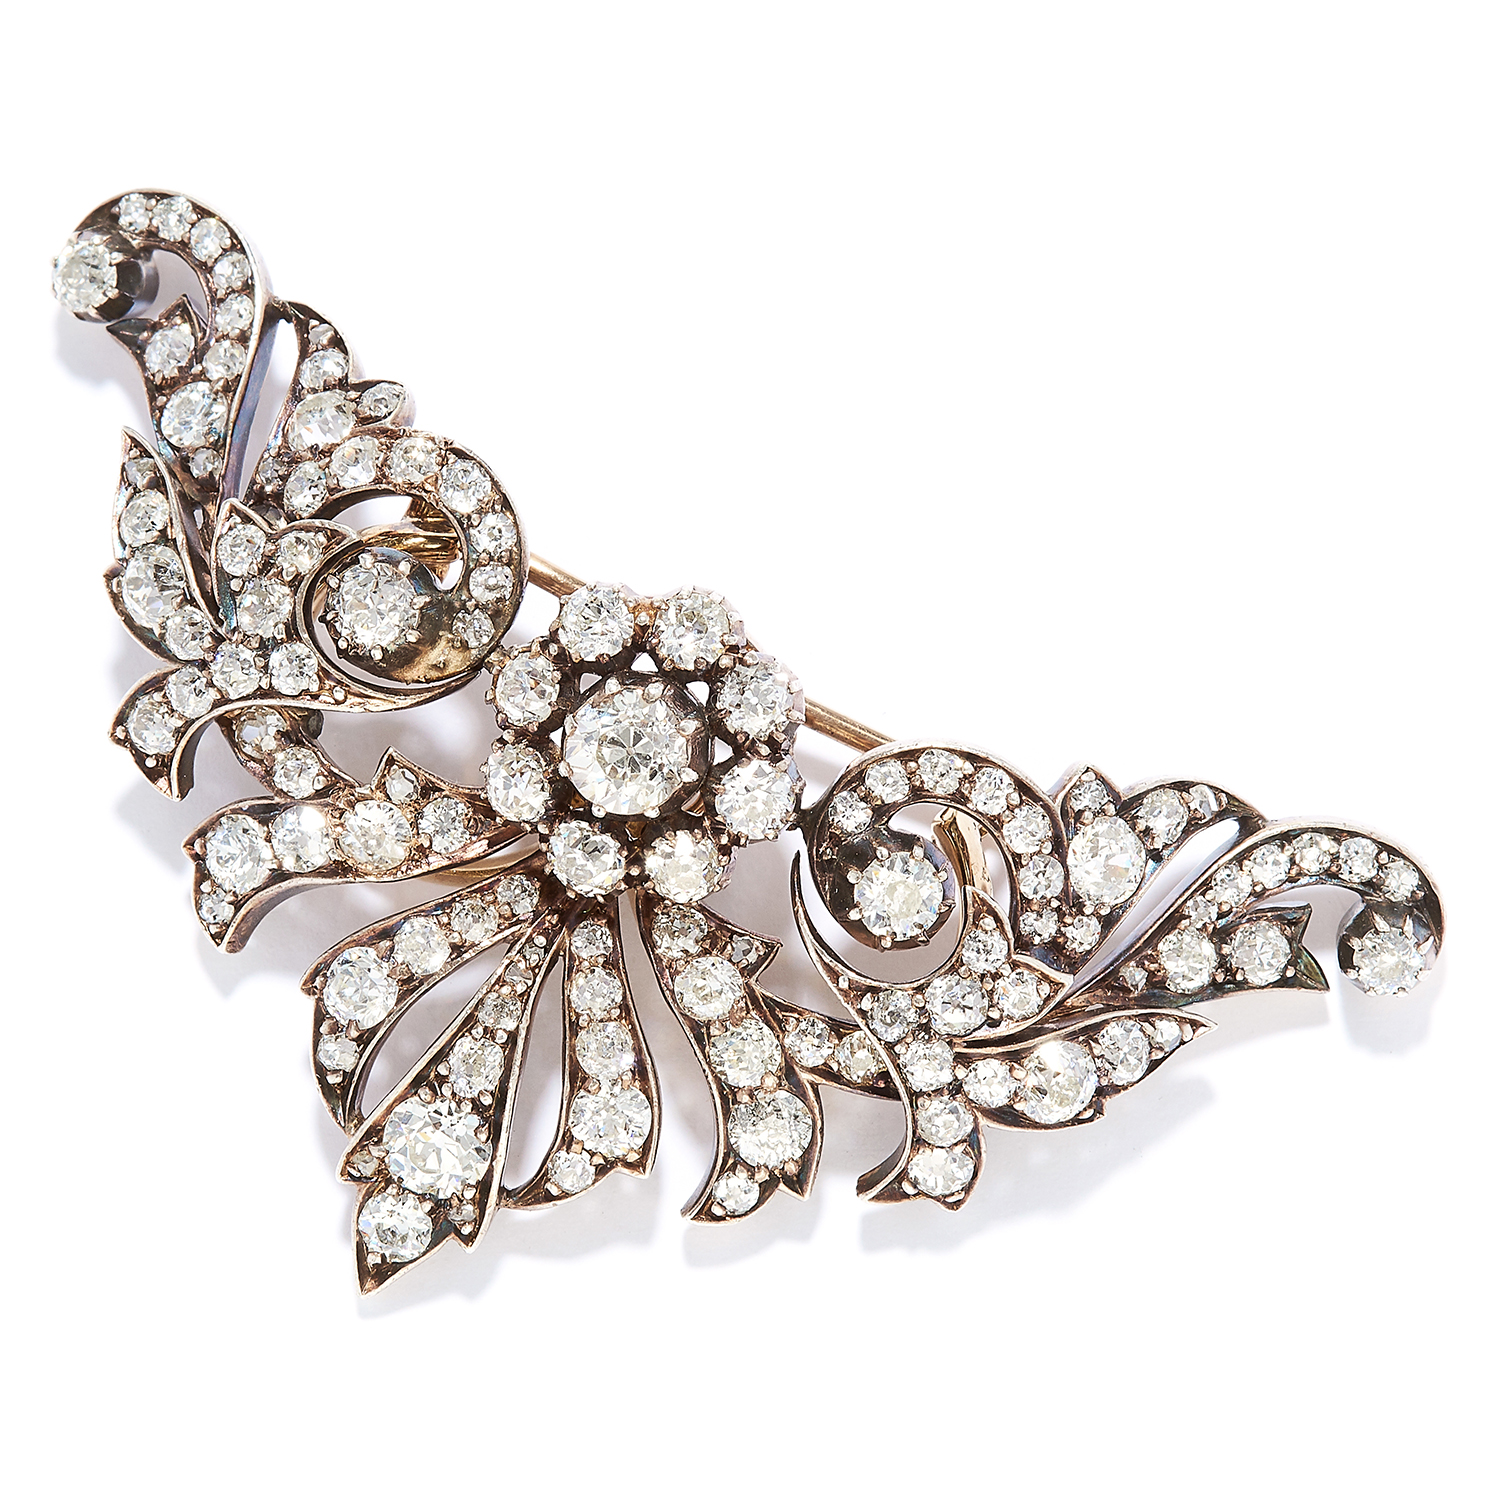 Los 27A - ANTIQUE 7.12 CARAT DIAMOND BROOCH in yellow gold, set with old cut diamonds totalling